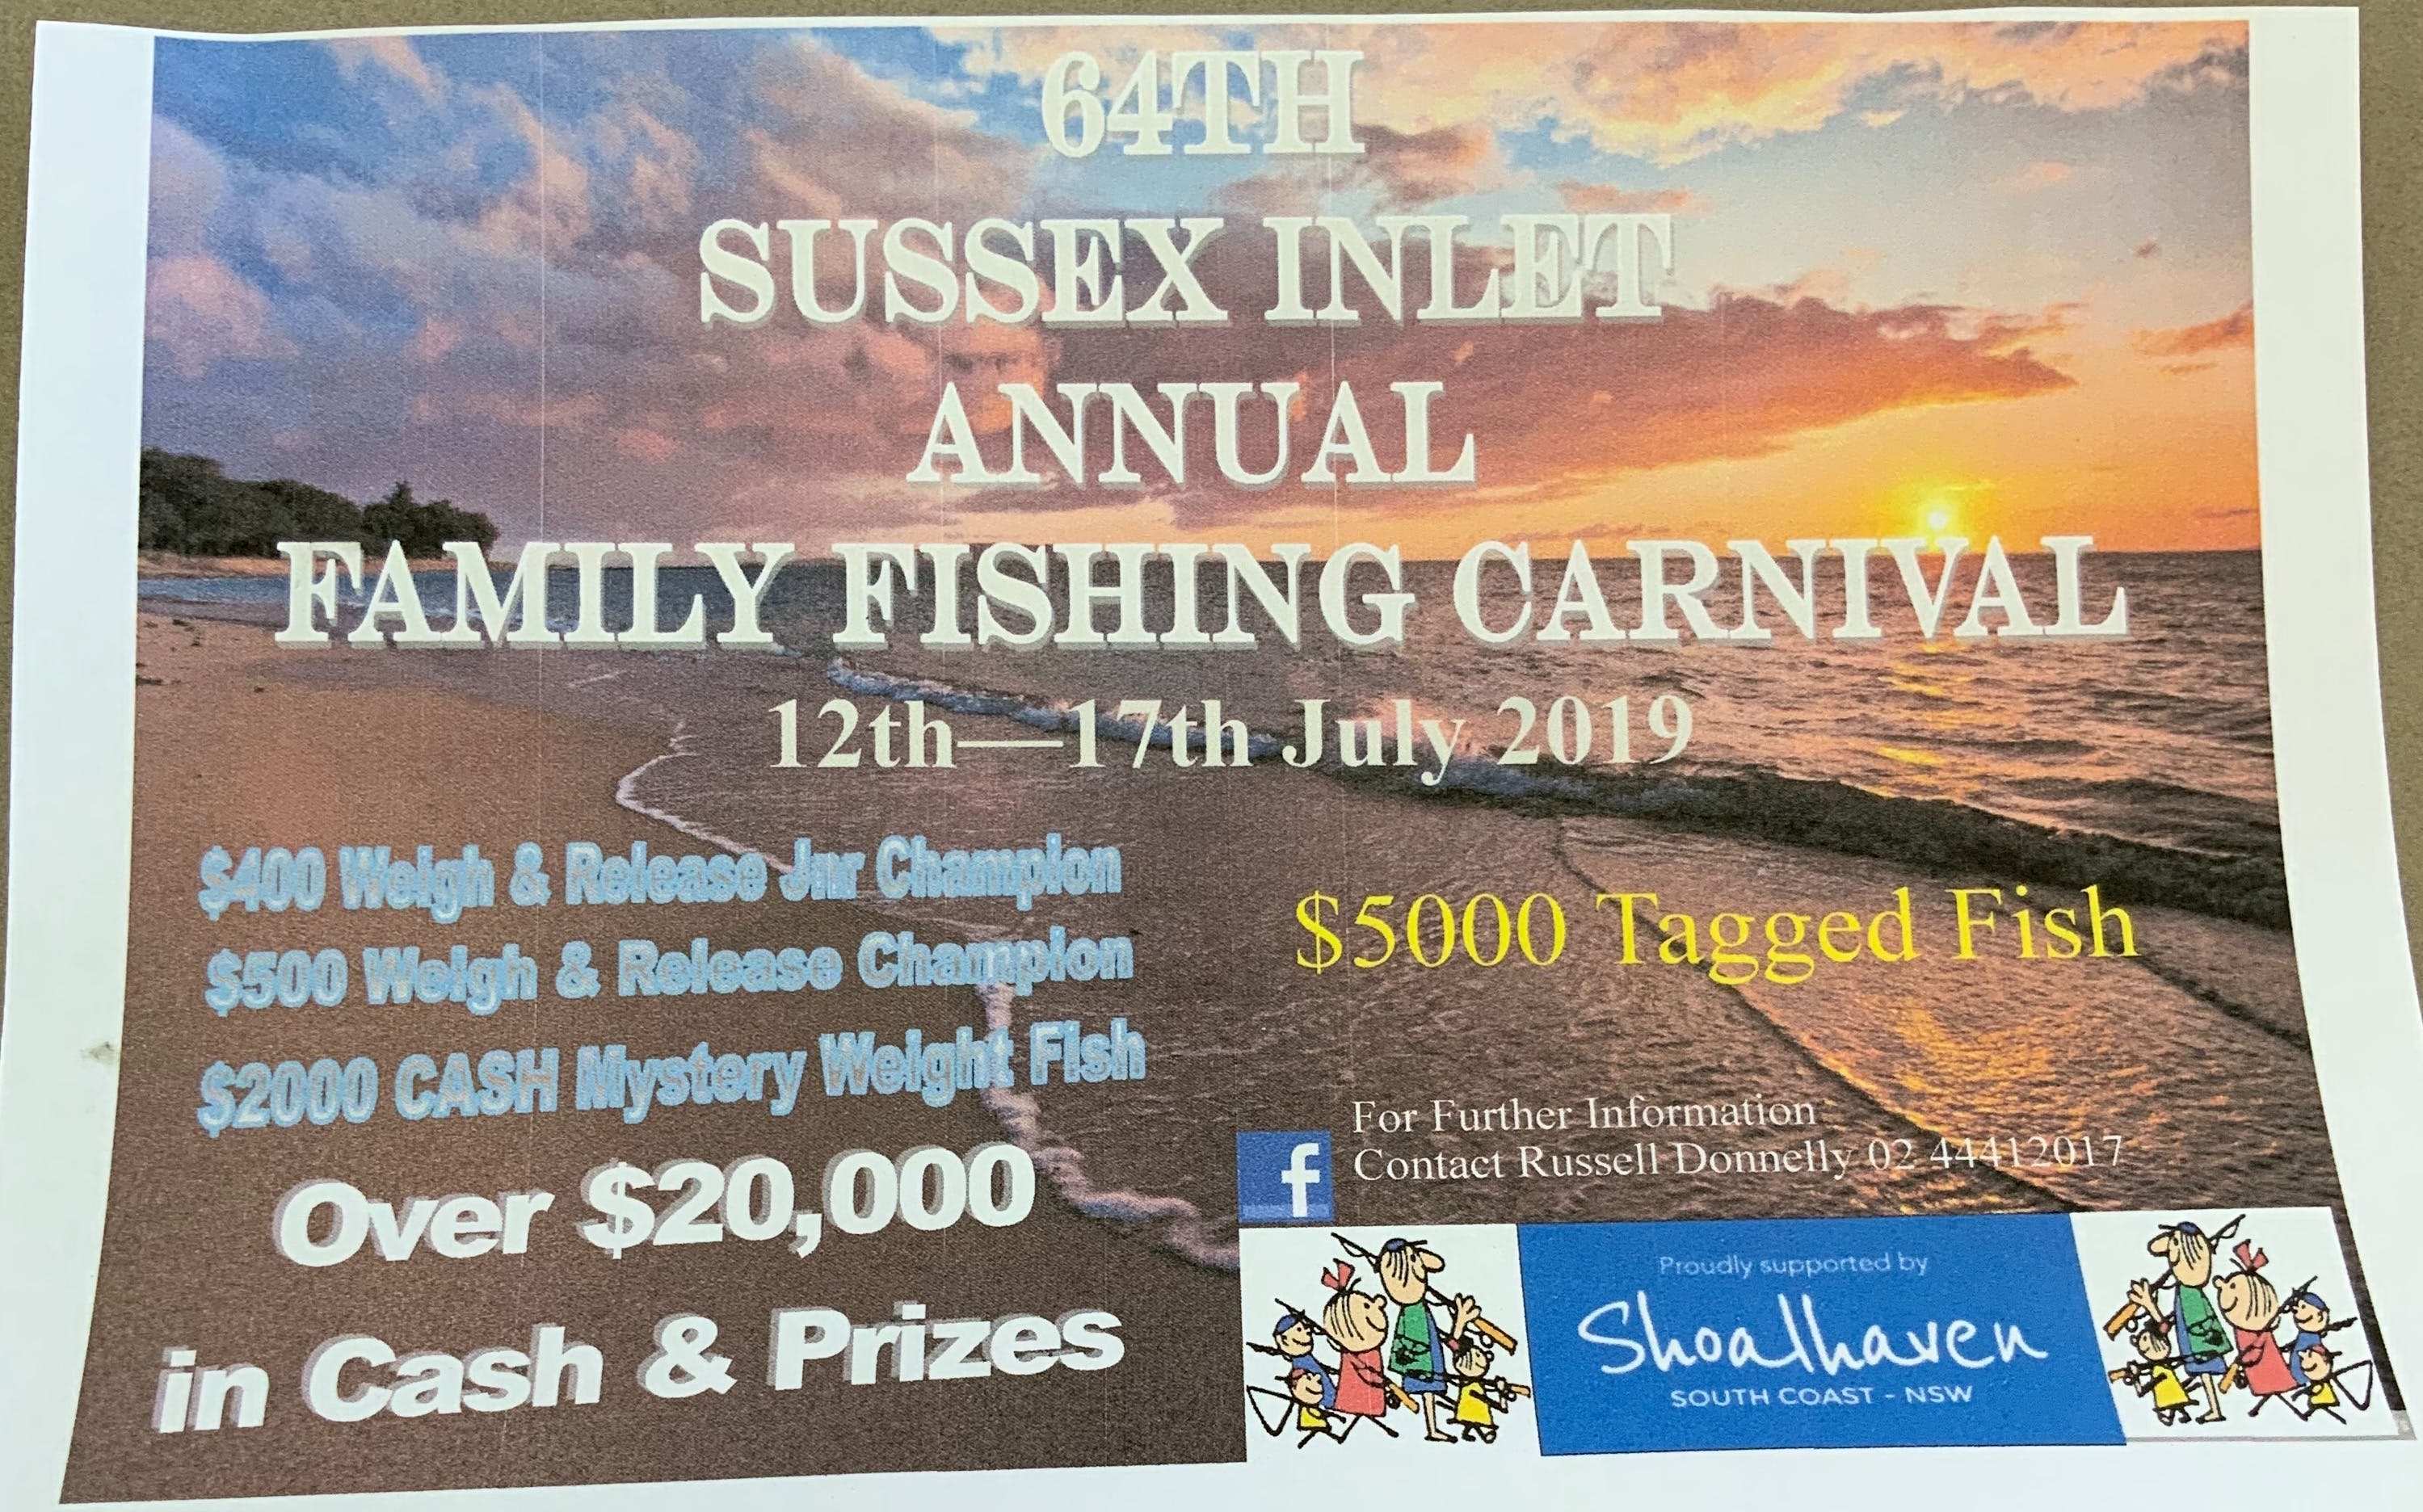 The Sussex Inlet Annual Family Fishing Carnival - Casino Accommodation